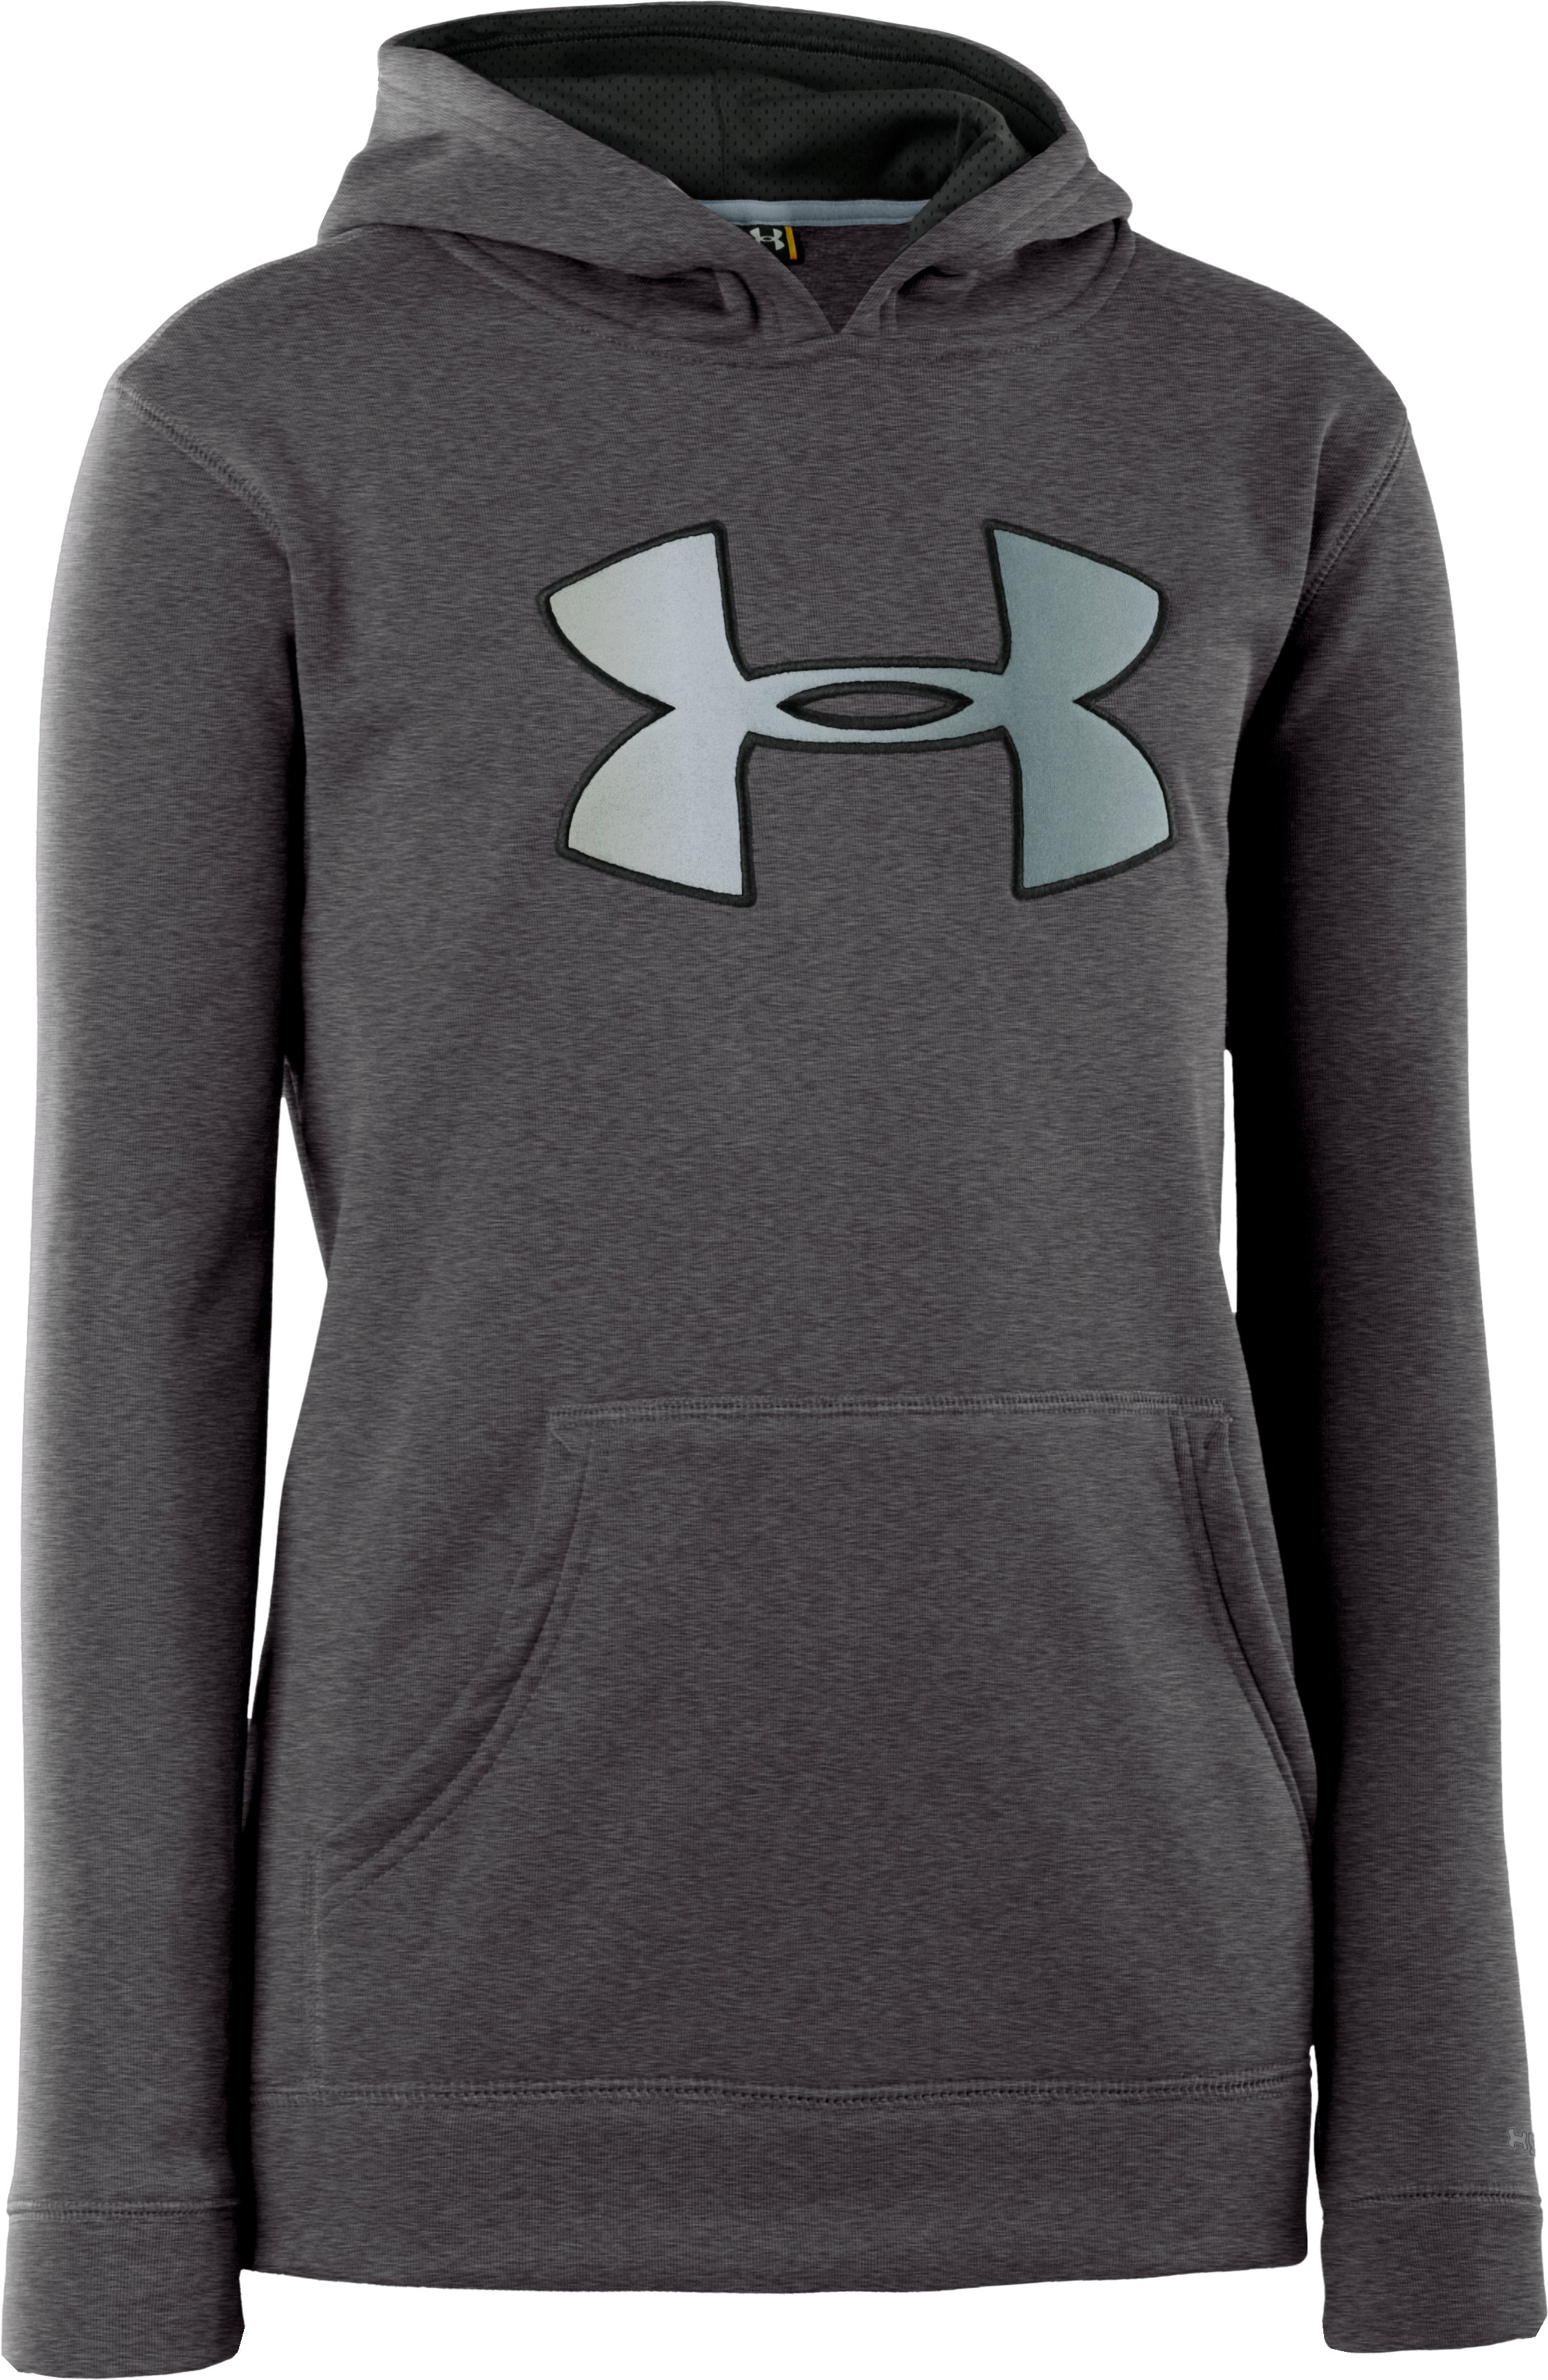 Boys' Armour® Fleece Storm Big Logo Hoodie, Carbon Heather